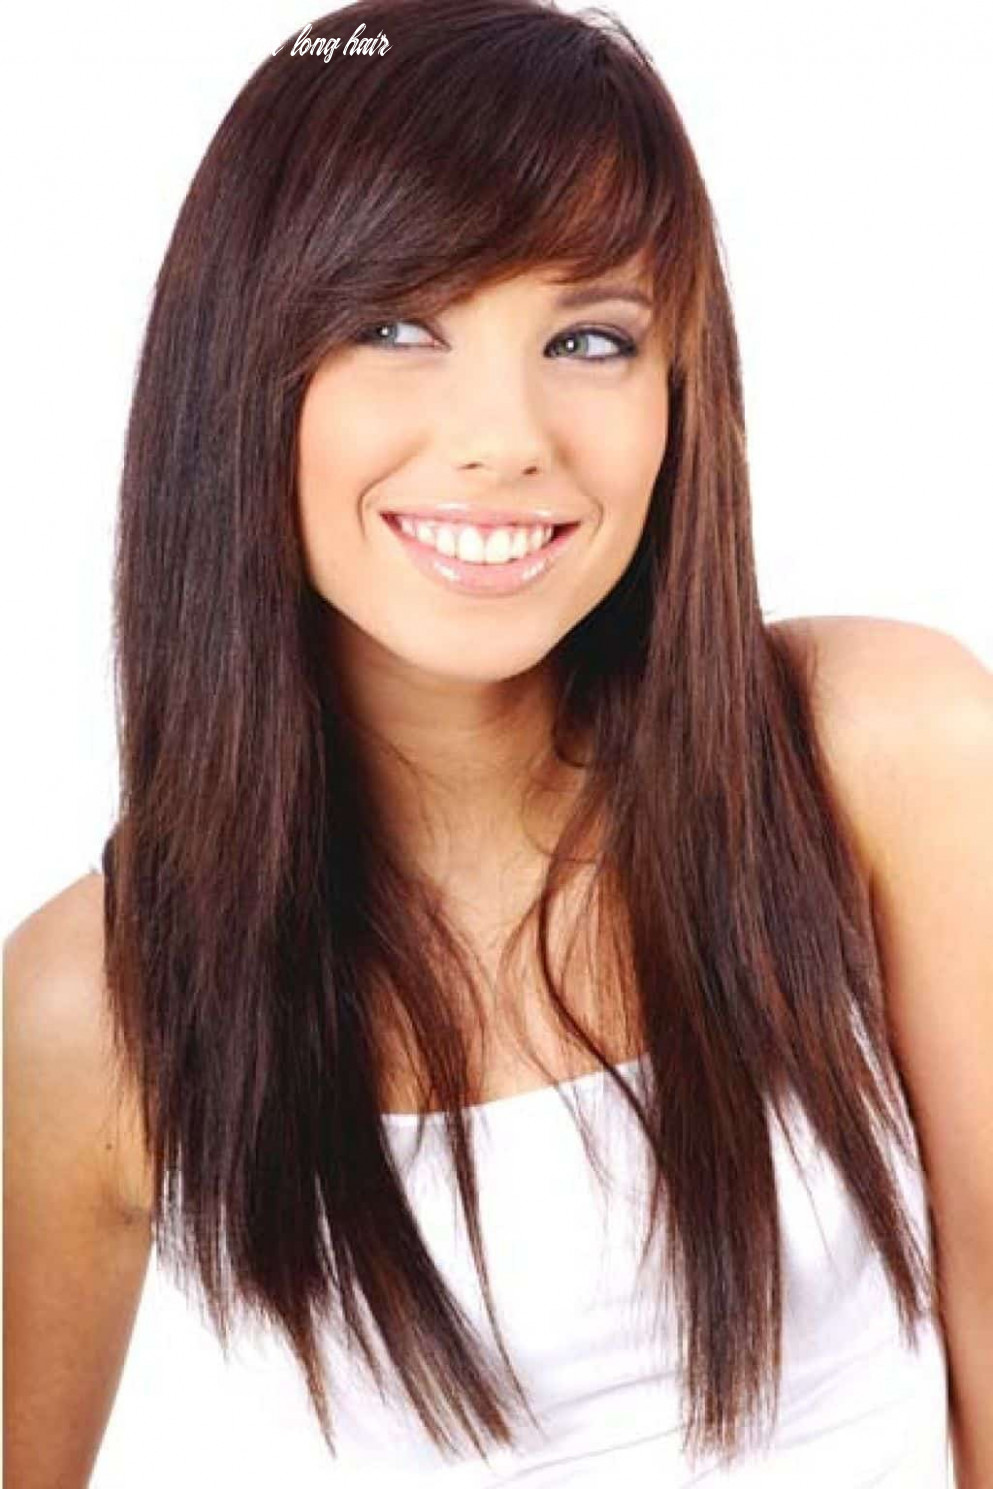 11 alluring side bangs on long hair (11 trends) side fringe hairstyles for long hair